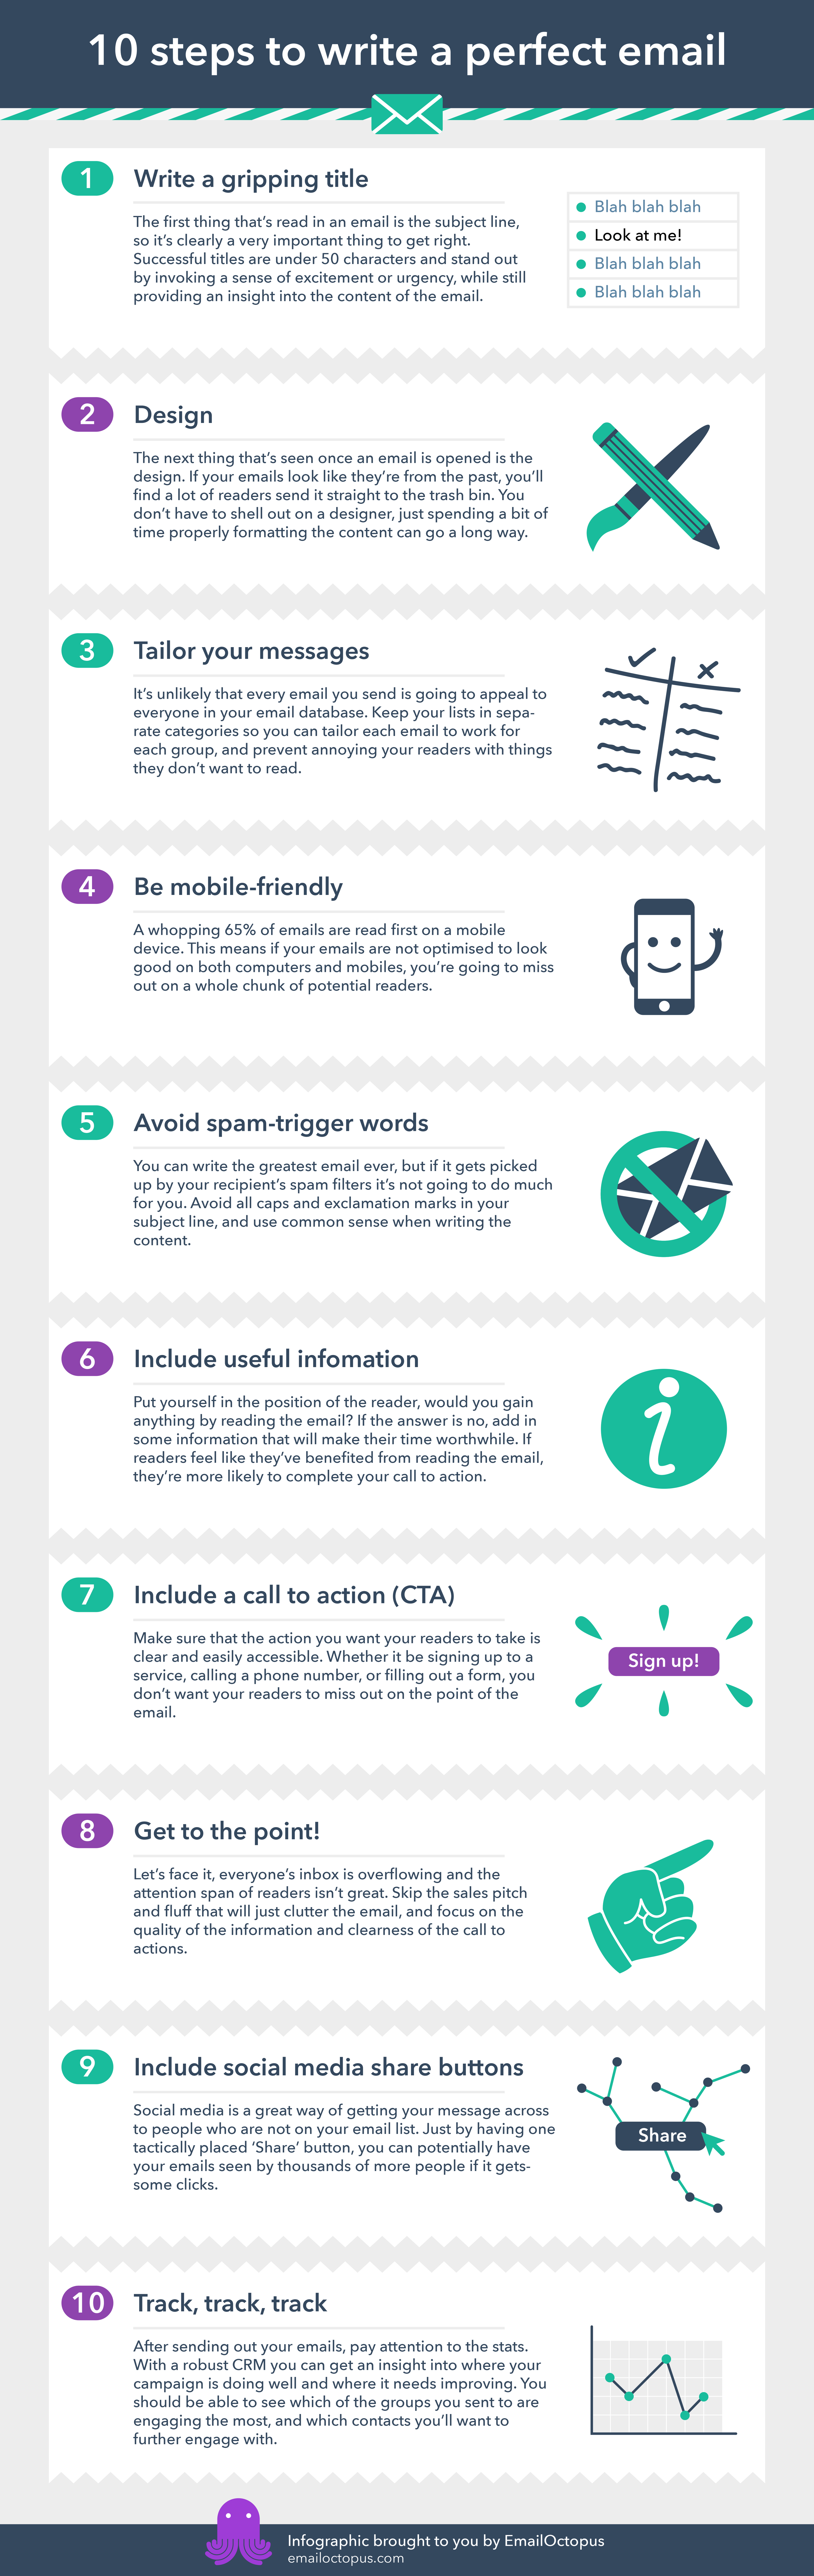 10 Steps To Writing a Perfect Email